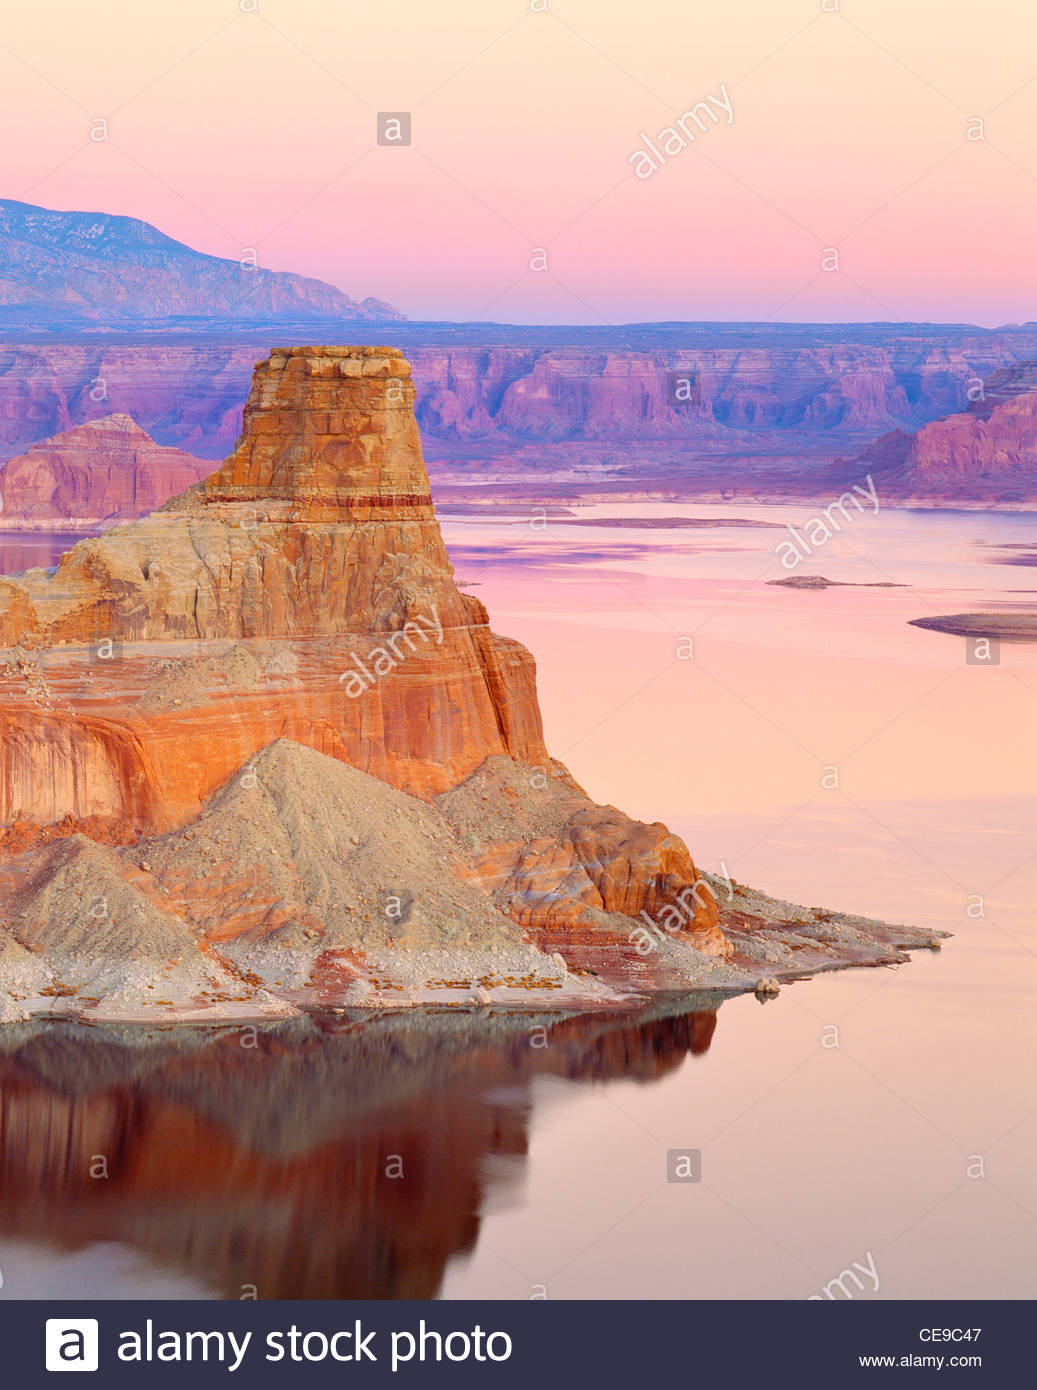 'Lake Powell' al crepuscolo 'Padre Bay' con 'Gunsight Butte' [Glen Canyon National Recreation Immagini Stock